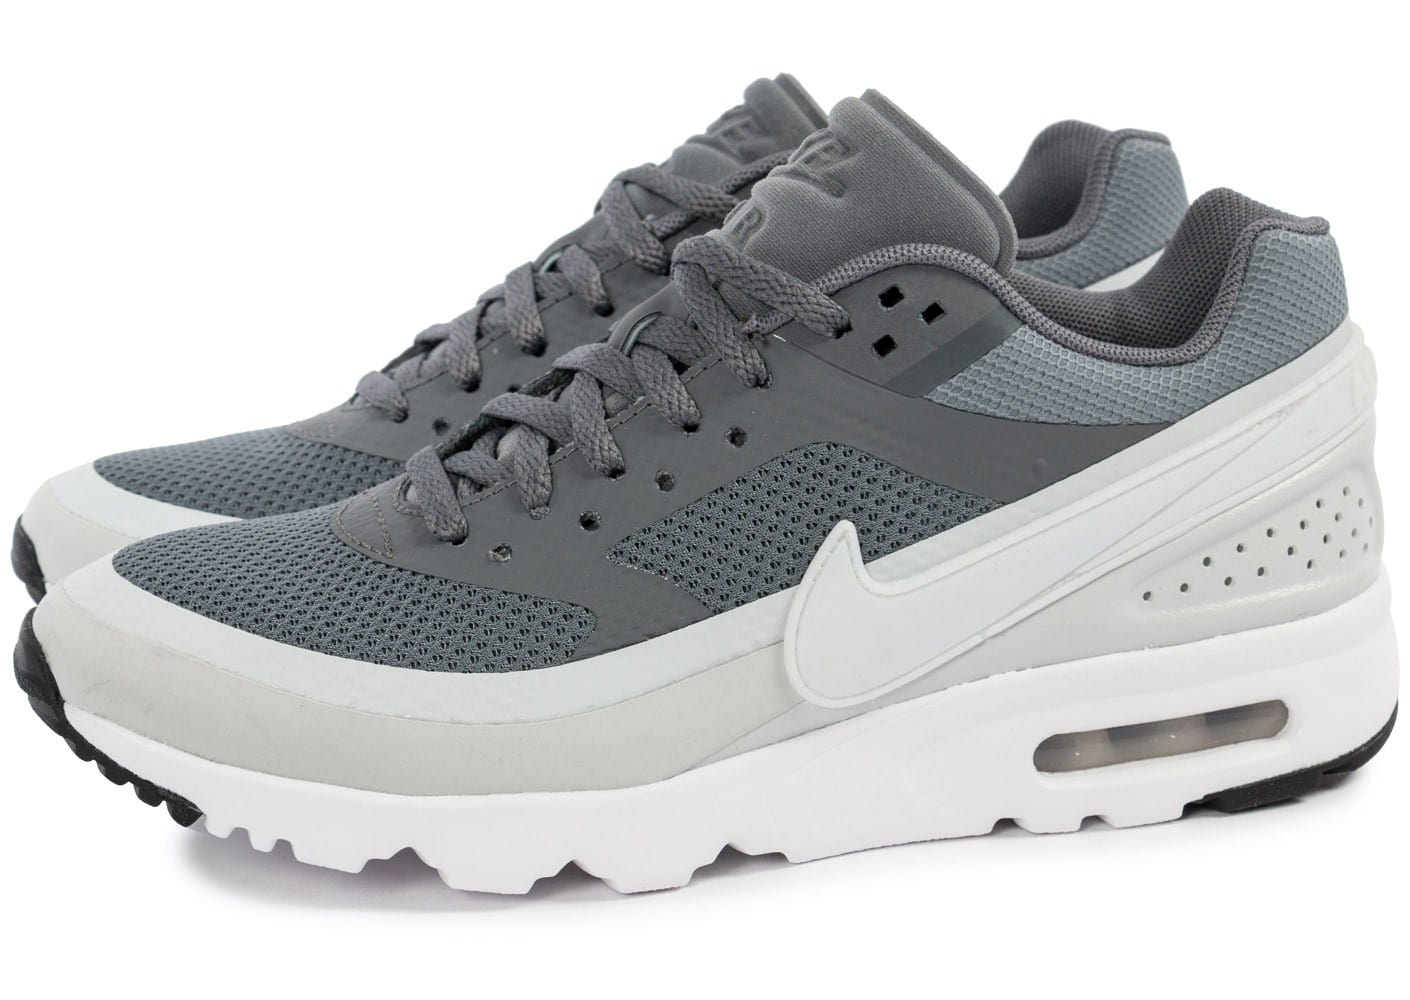 half off c90c6 f6cee Cliquez pour zoomer Chaussures Nike Air Max BW Ultra W Cool Grey vue  extérieure ...